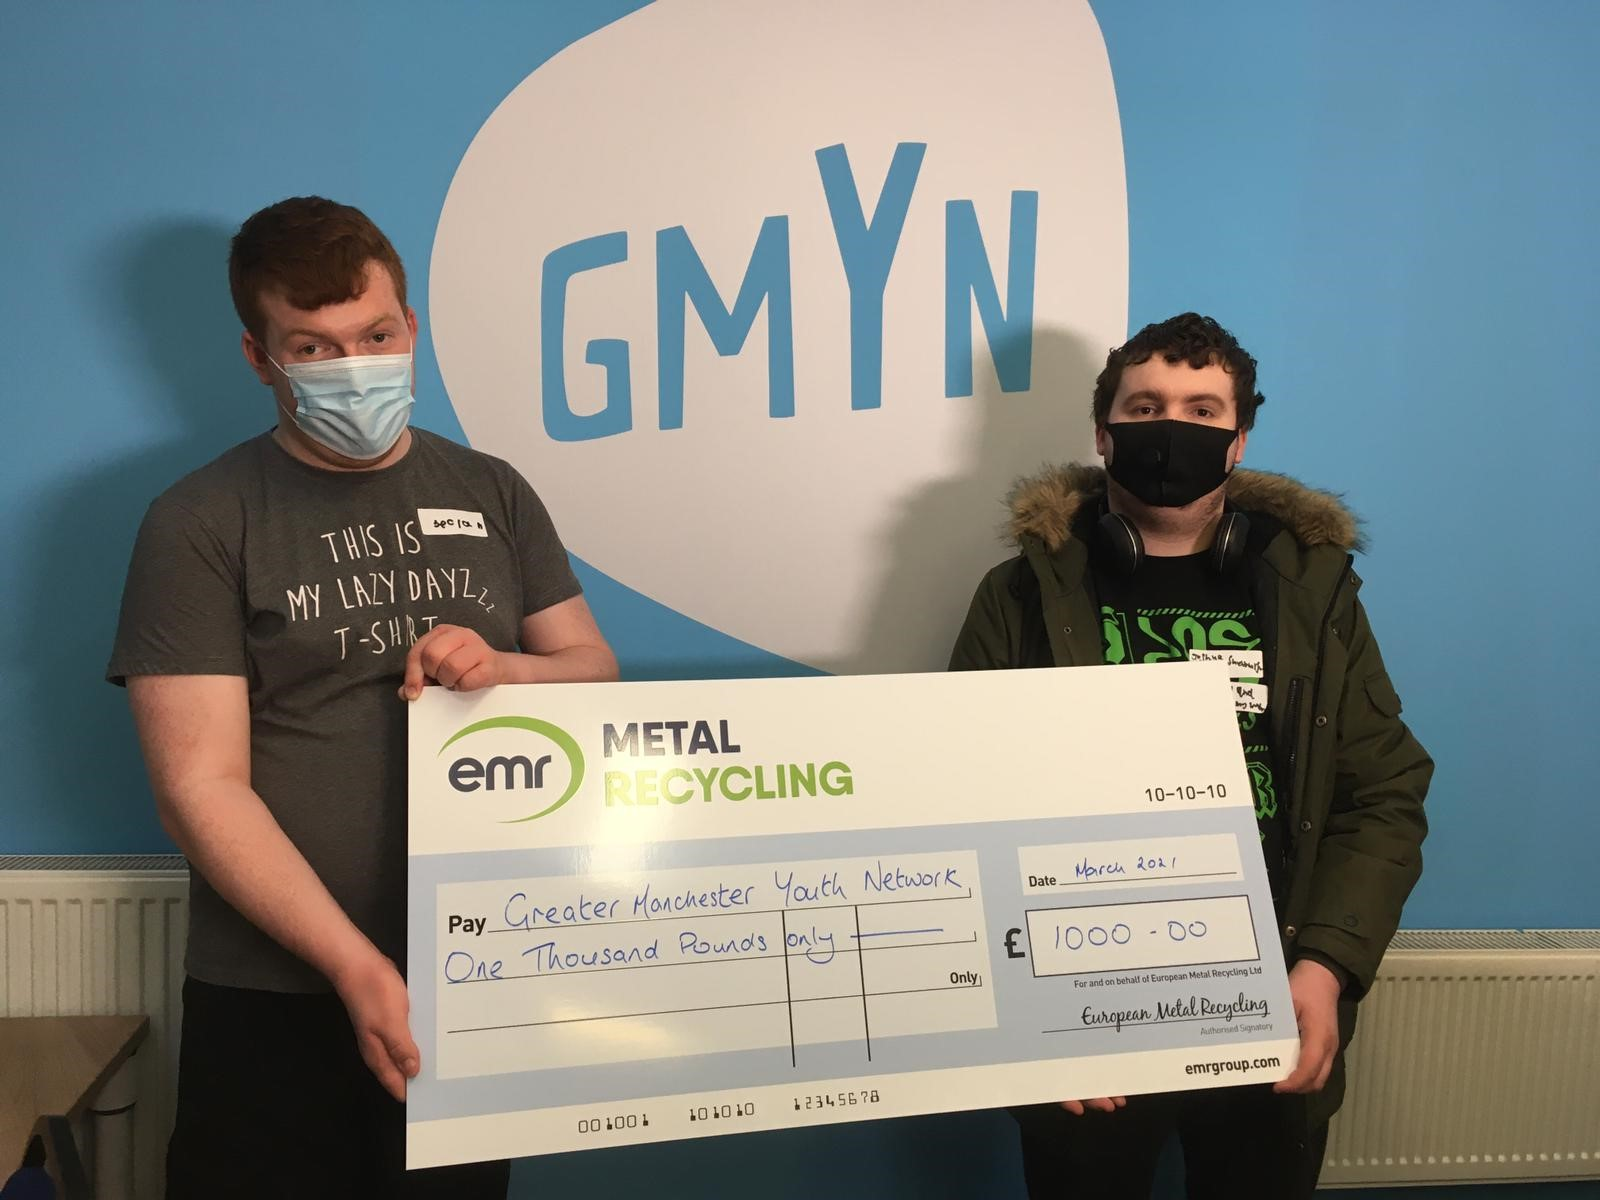 EMR Manchester awards donation to Greater Manchester Youth Network